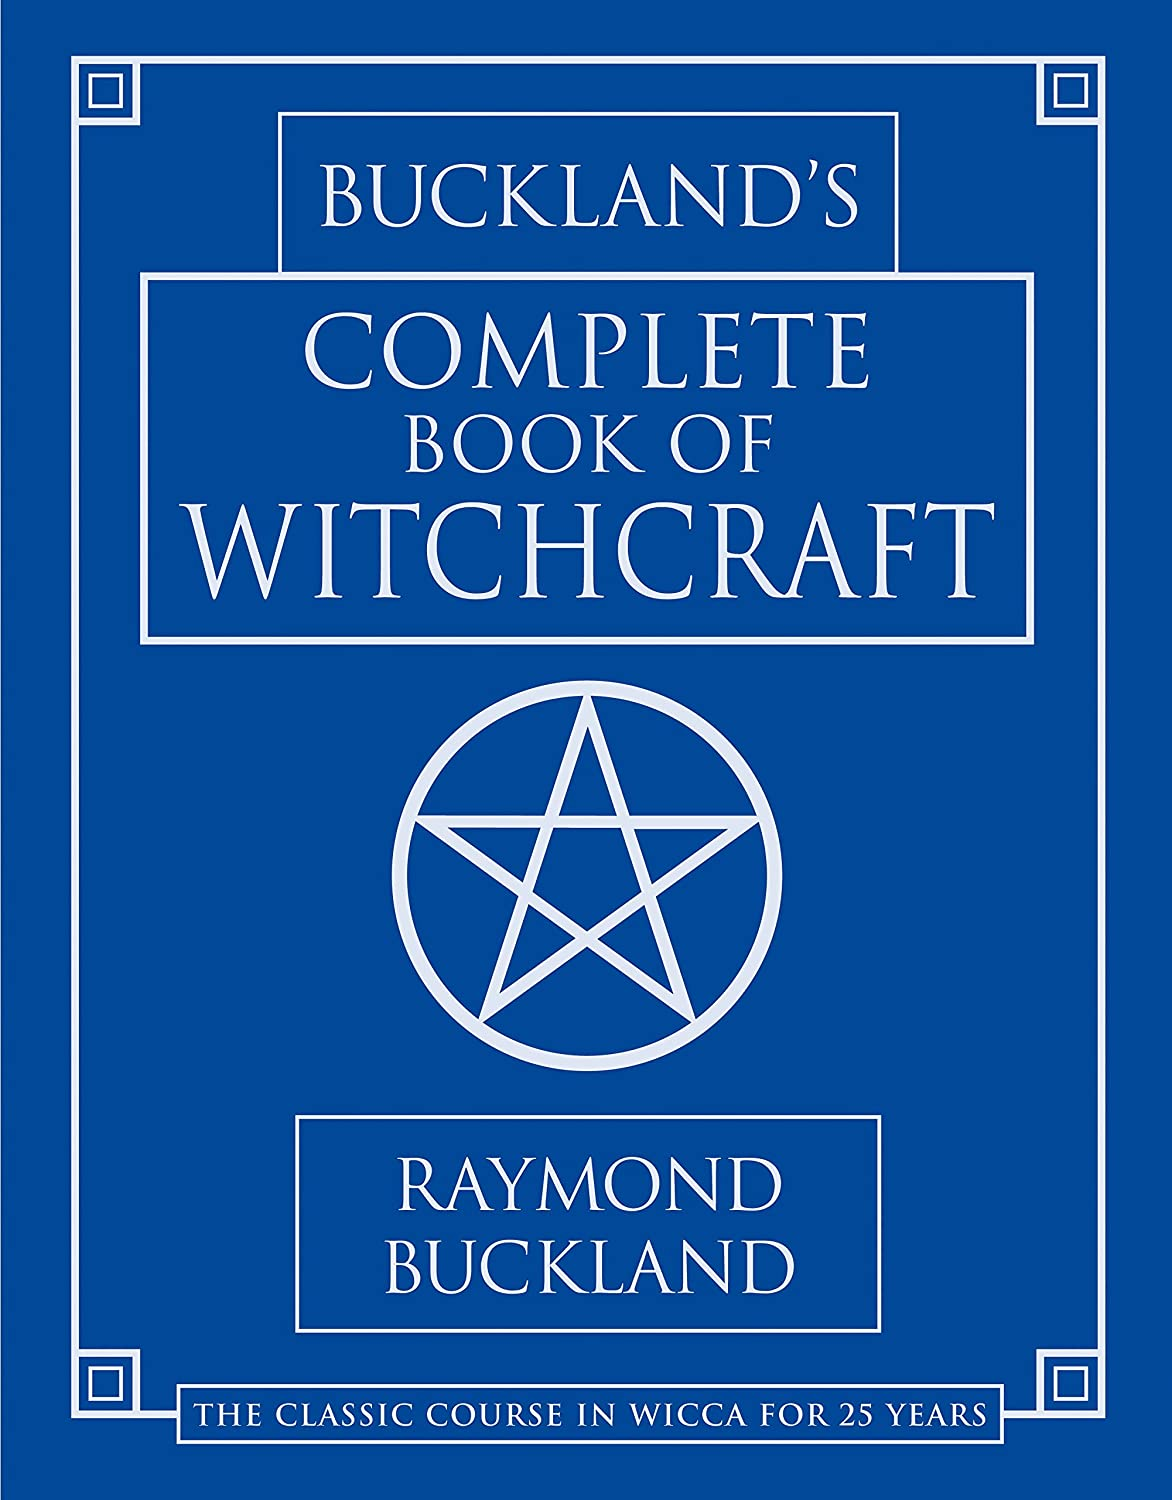 Buckland's Complete Book of Witchcraft; Raymond Buckland